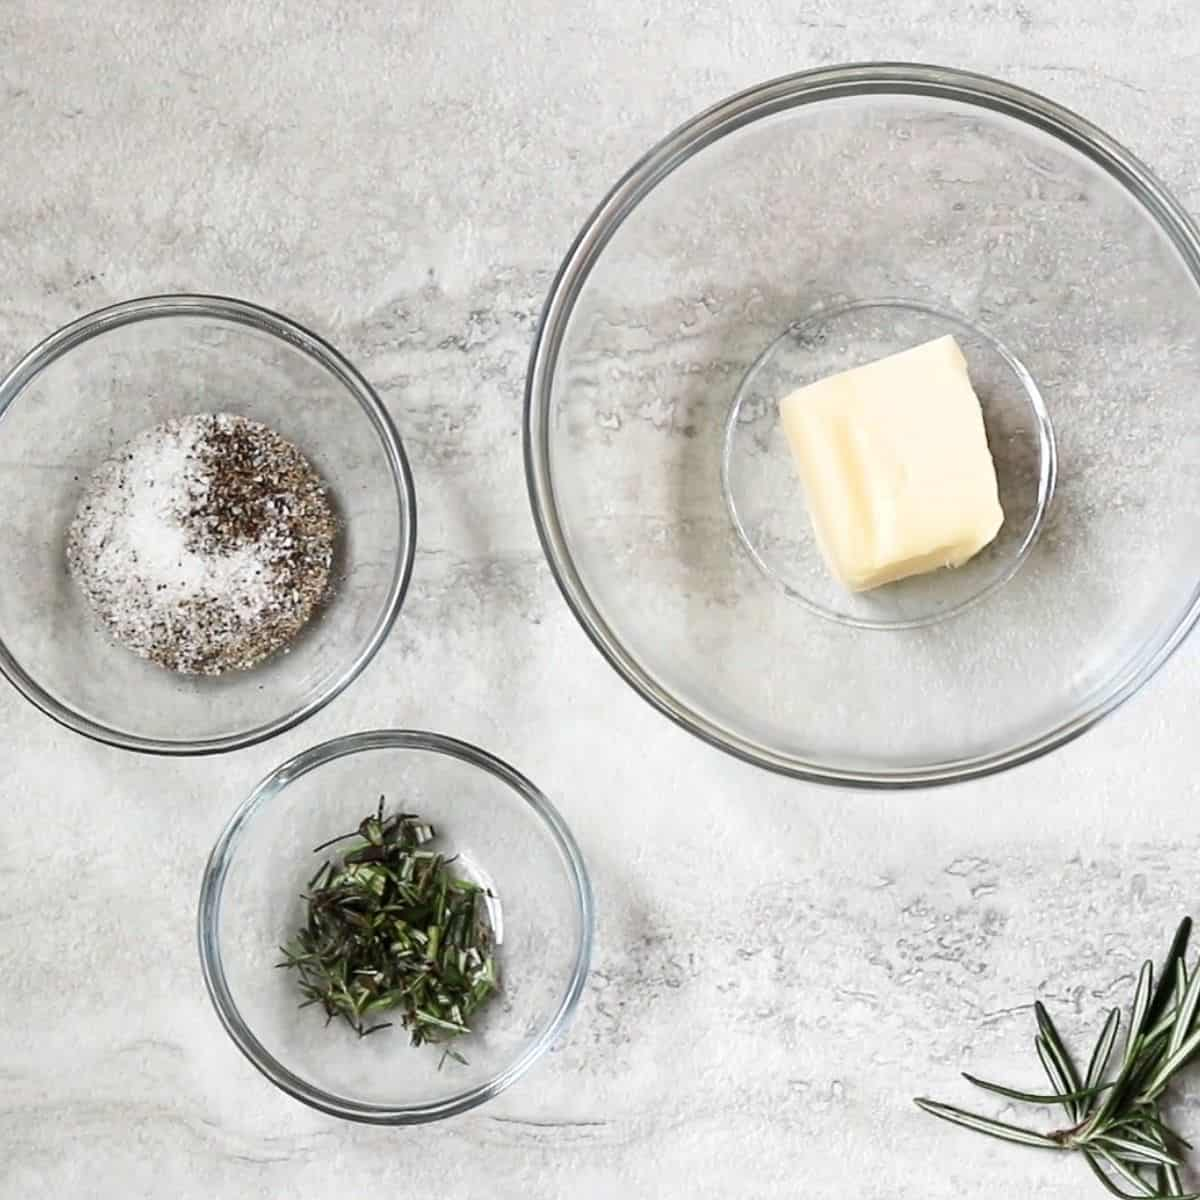 Ingredients for compound butter in glass bowls.